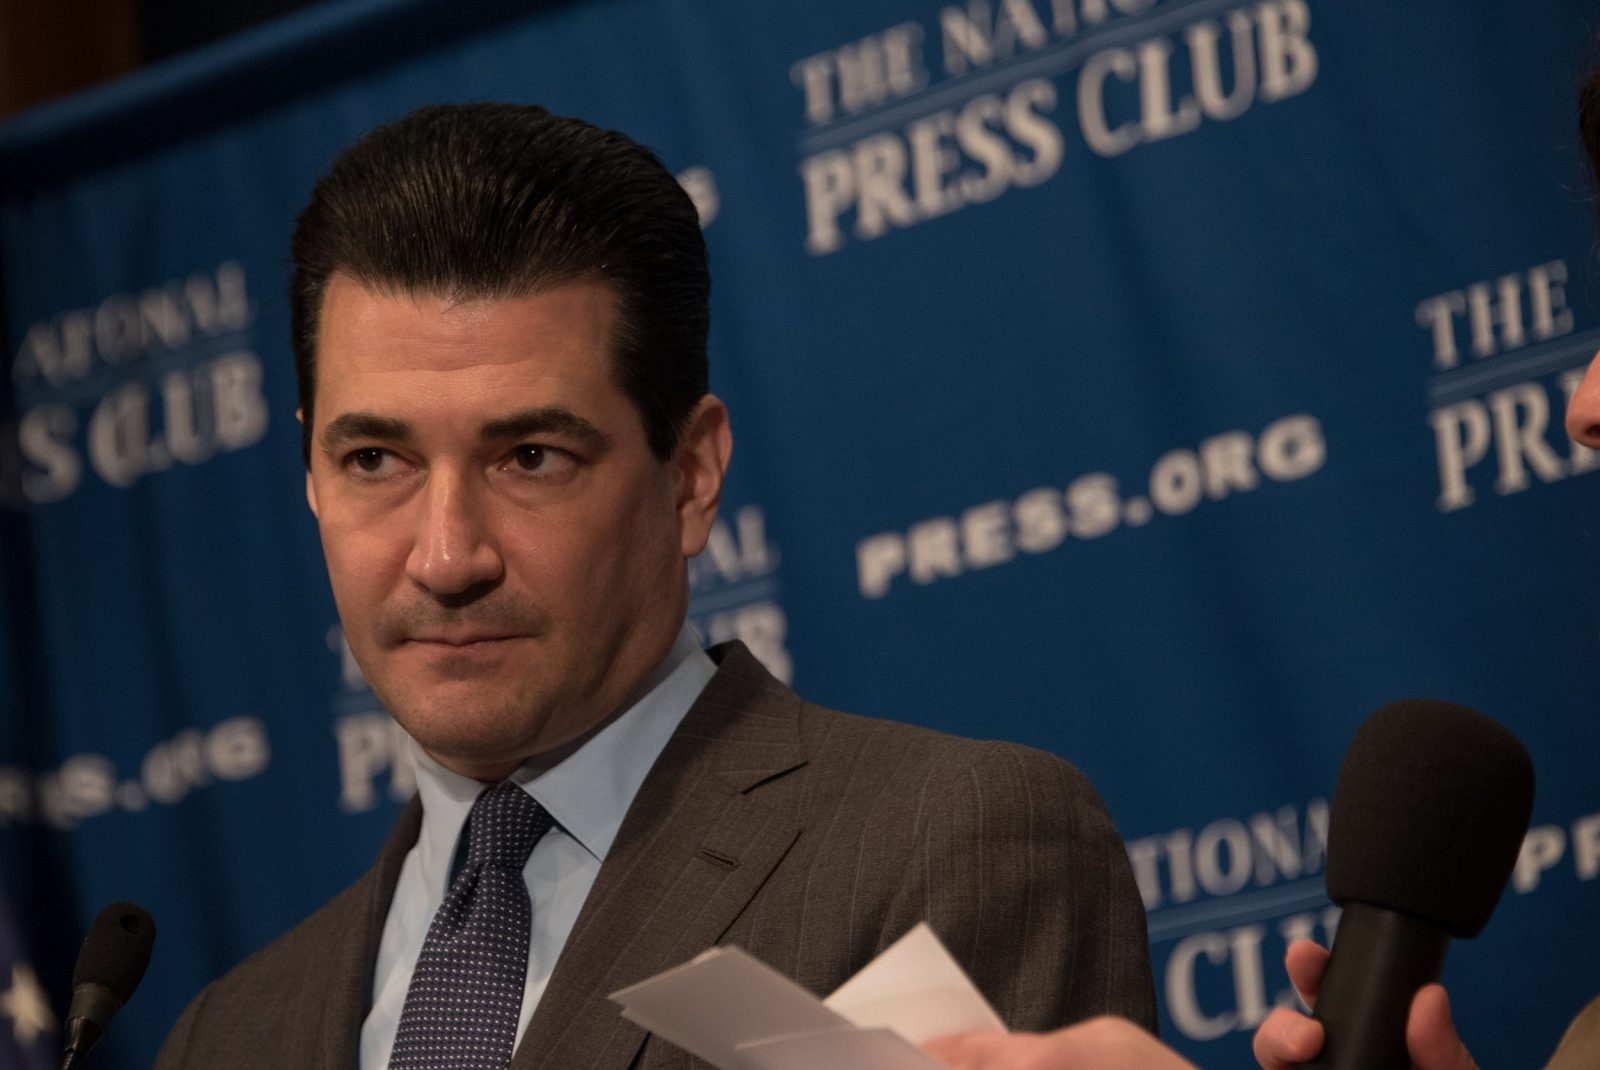 FDA Boss Resigns. What Does This Mean For the Vaping Community?